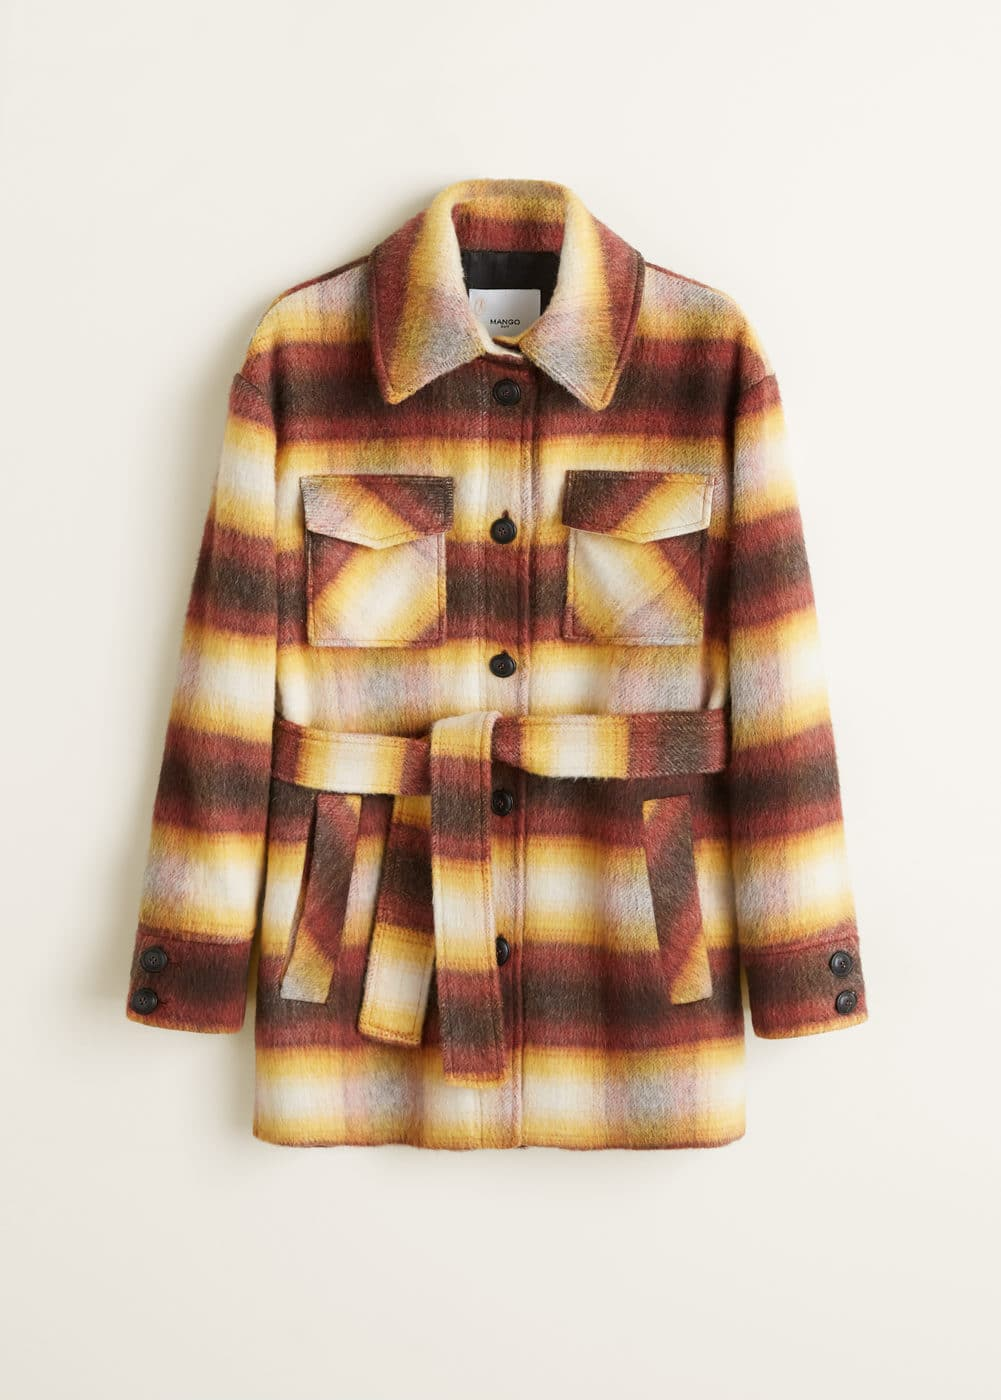 Checkered Wool Blend Coat by Mango